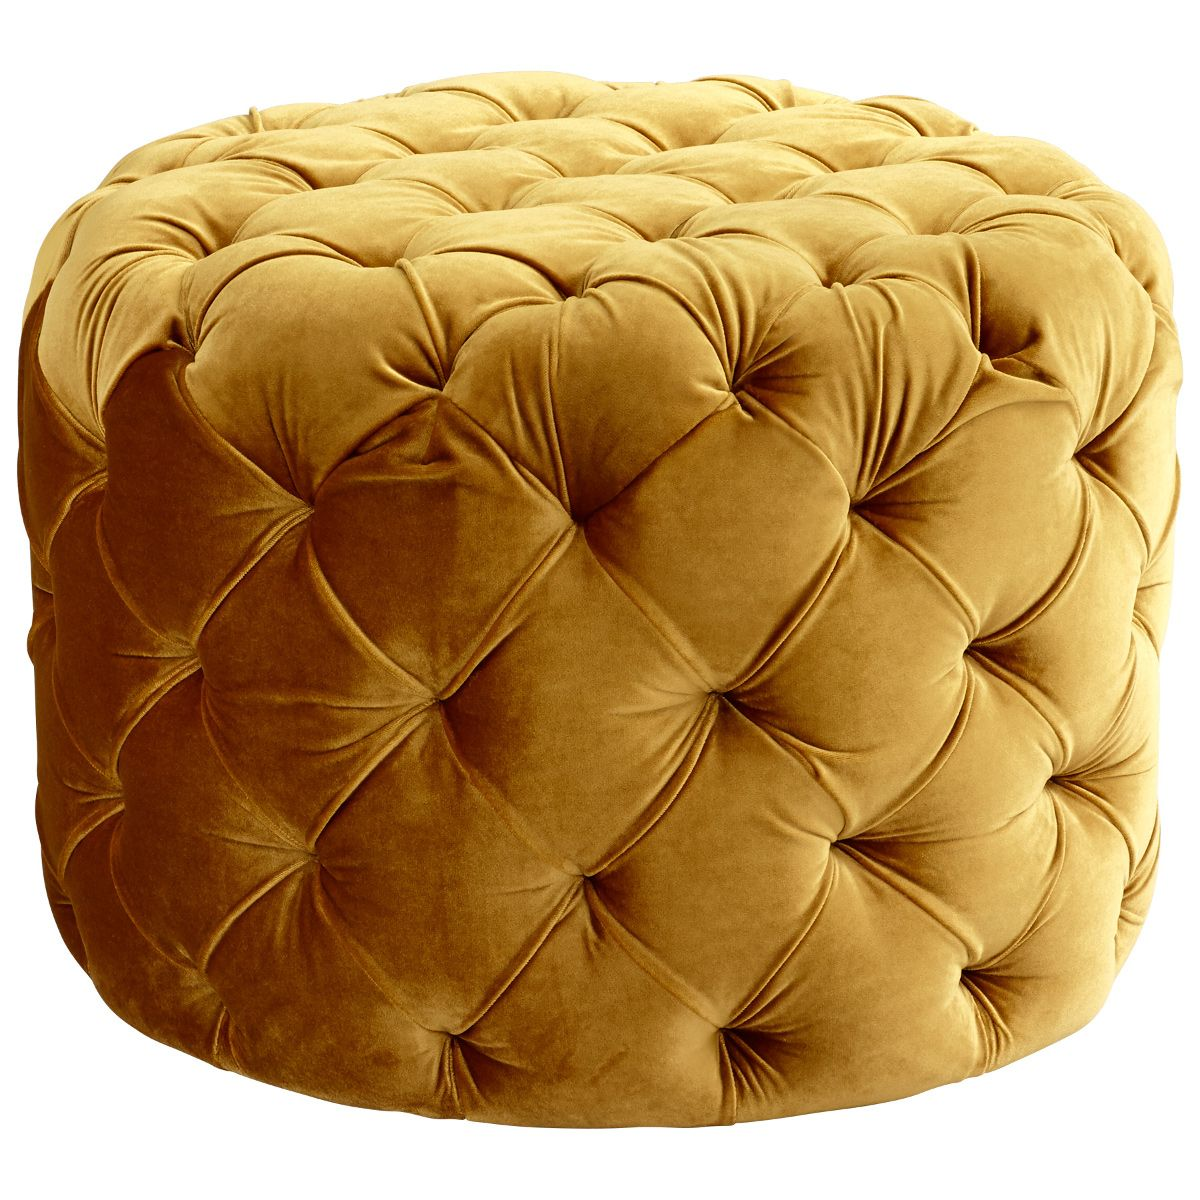 Astounding Audrey Tufted Velvet Ottoman Stool Round Tufted Ottoman Pdpeps Interior Chair Design Pdpepsorg